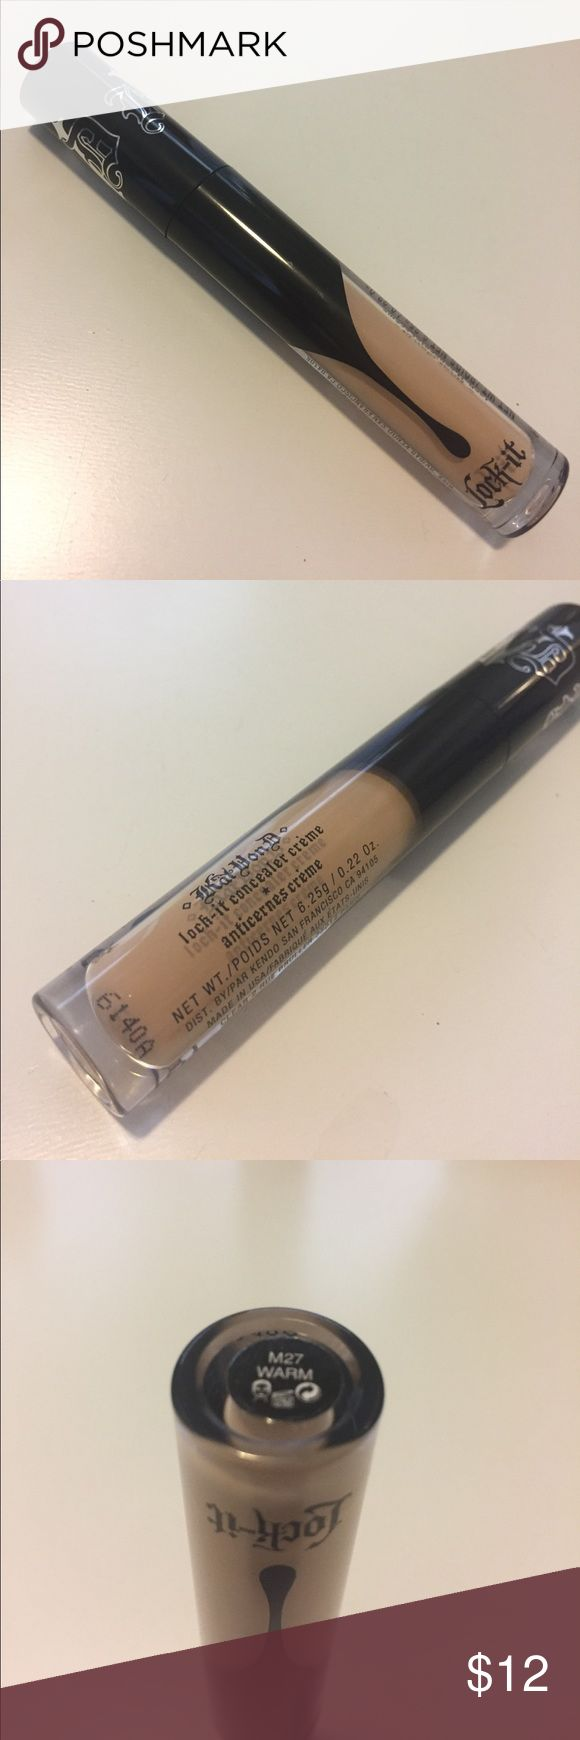 Kat Von D Lock it Concealer Creme- Warm New and unused. Shade is M27 Warm. Bundle for discount. ALWAYS AUTHENTIC. Prices are firm unless lowered by me. I do offer a bundle discount. NO TRADES. Kat Von D Makeup Concealer